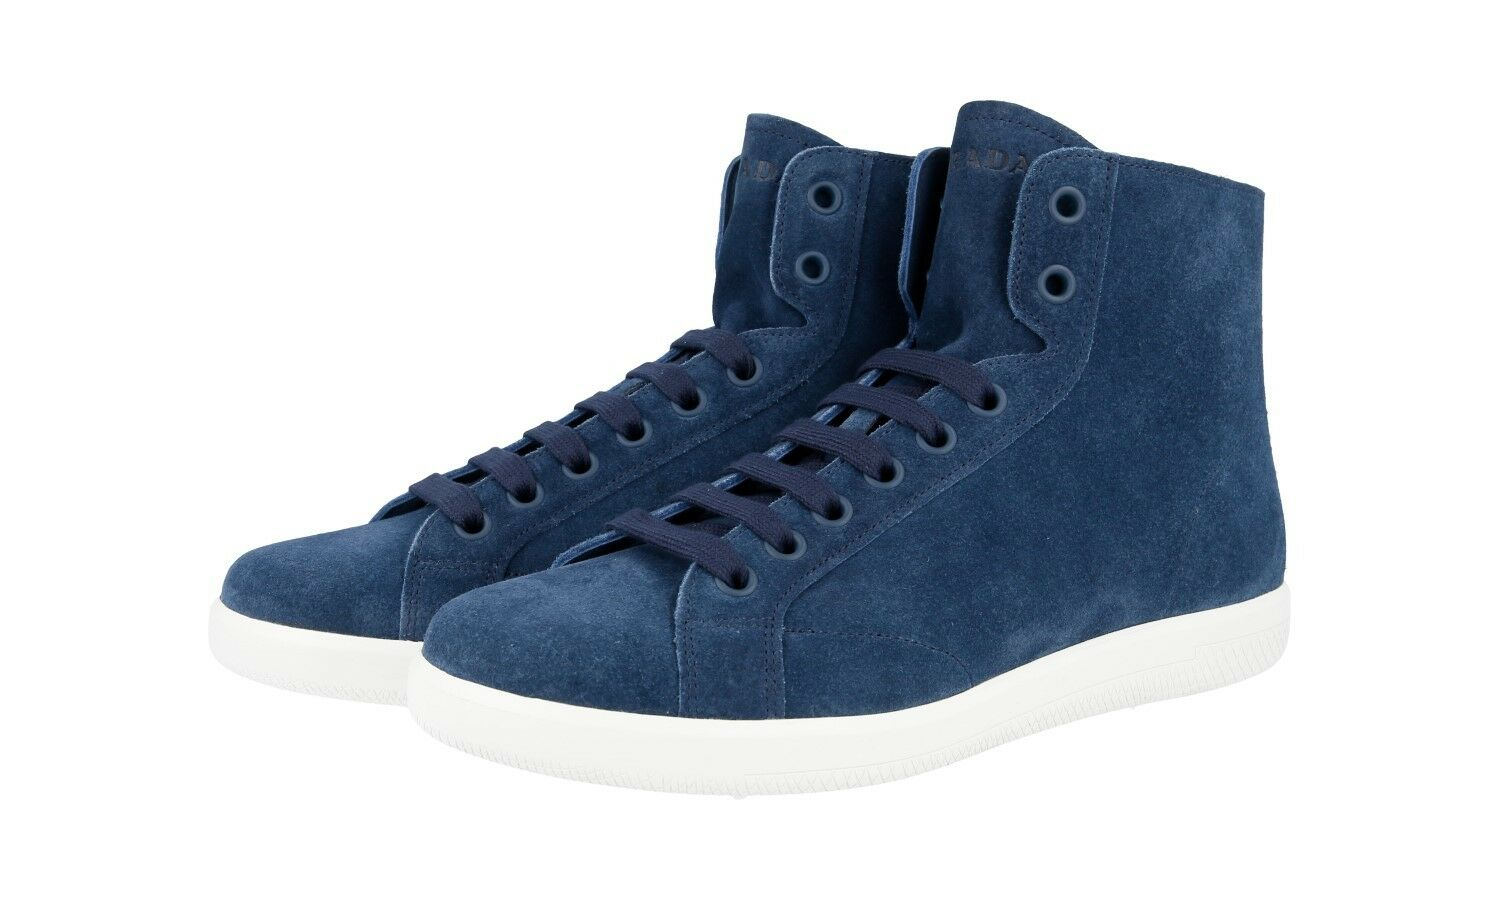 AUTH PRADA HIGH TOP SNEAKERS SHOES 4T3149 blueE SUEDE NEW 8,5 42,5 43